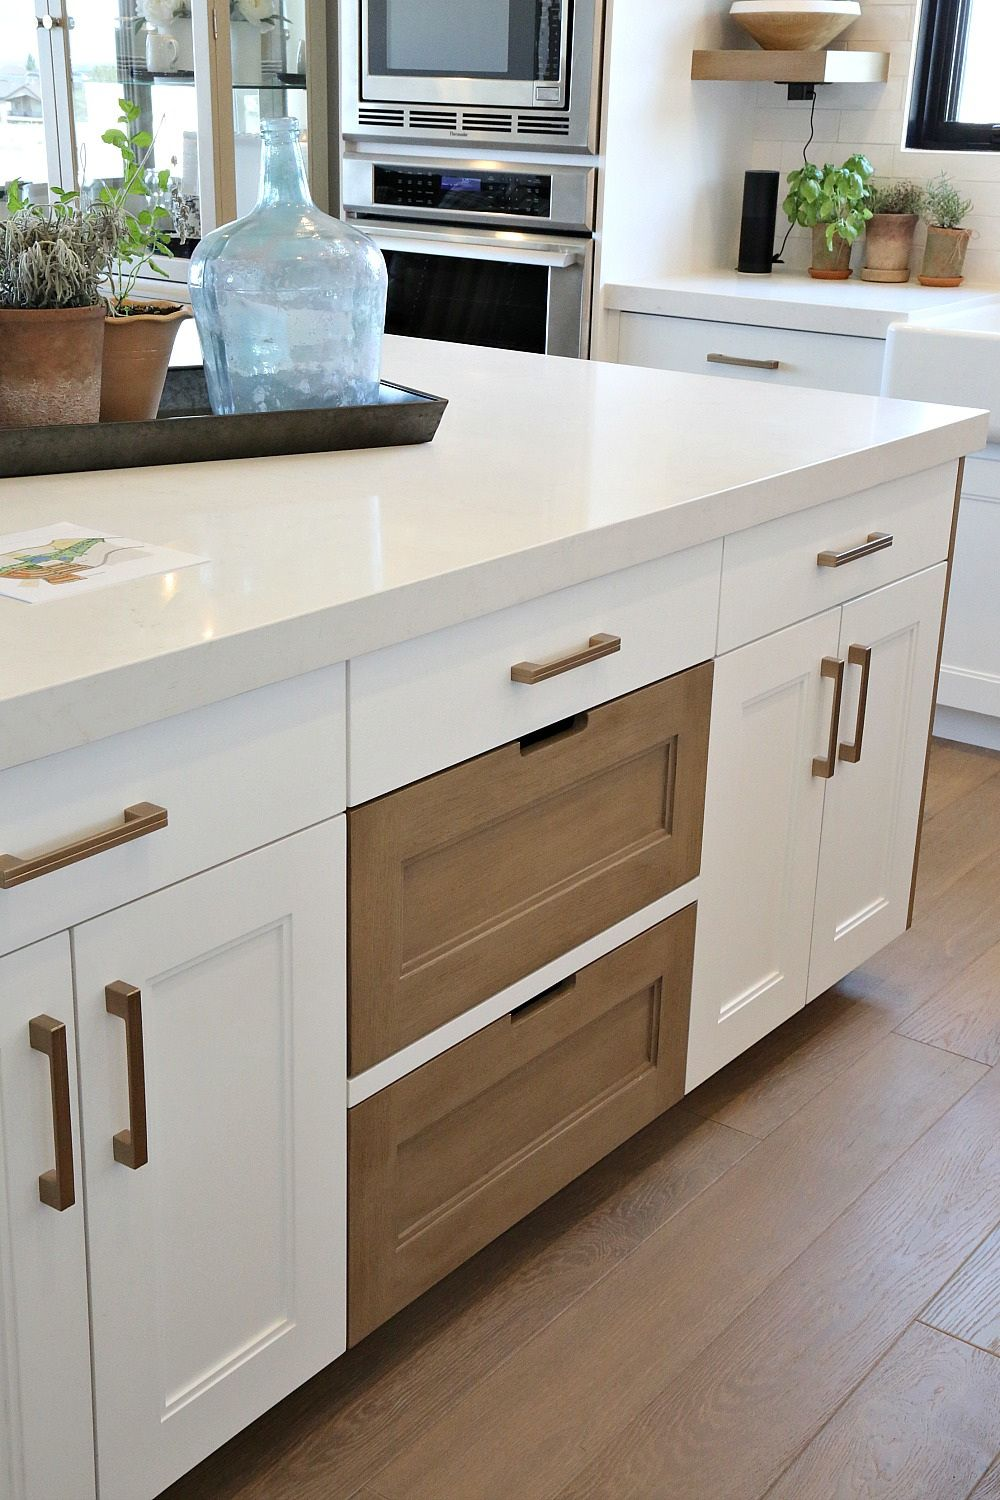 White Vs Stained Kitchen Cabinets 2021 In 2020 Stained Kitchen Cabinets New Kitchen Cabinets Staining Cabinets